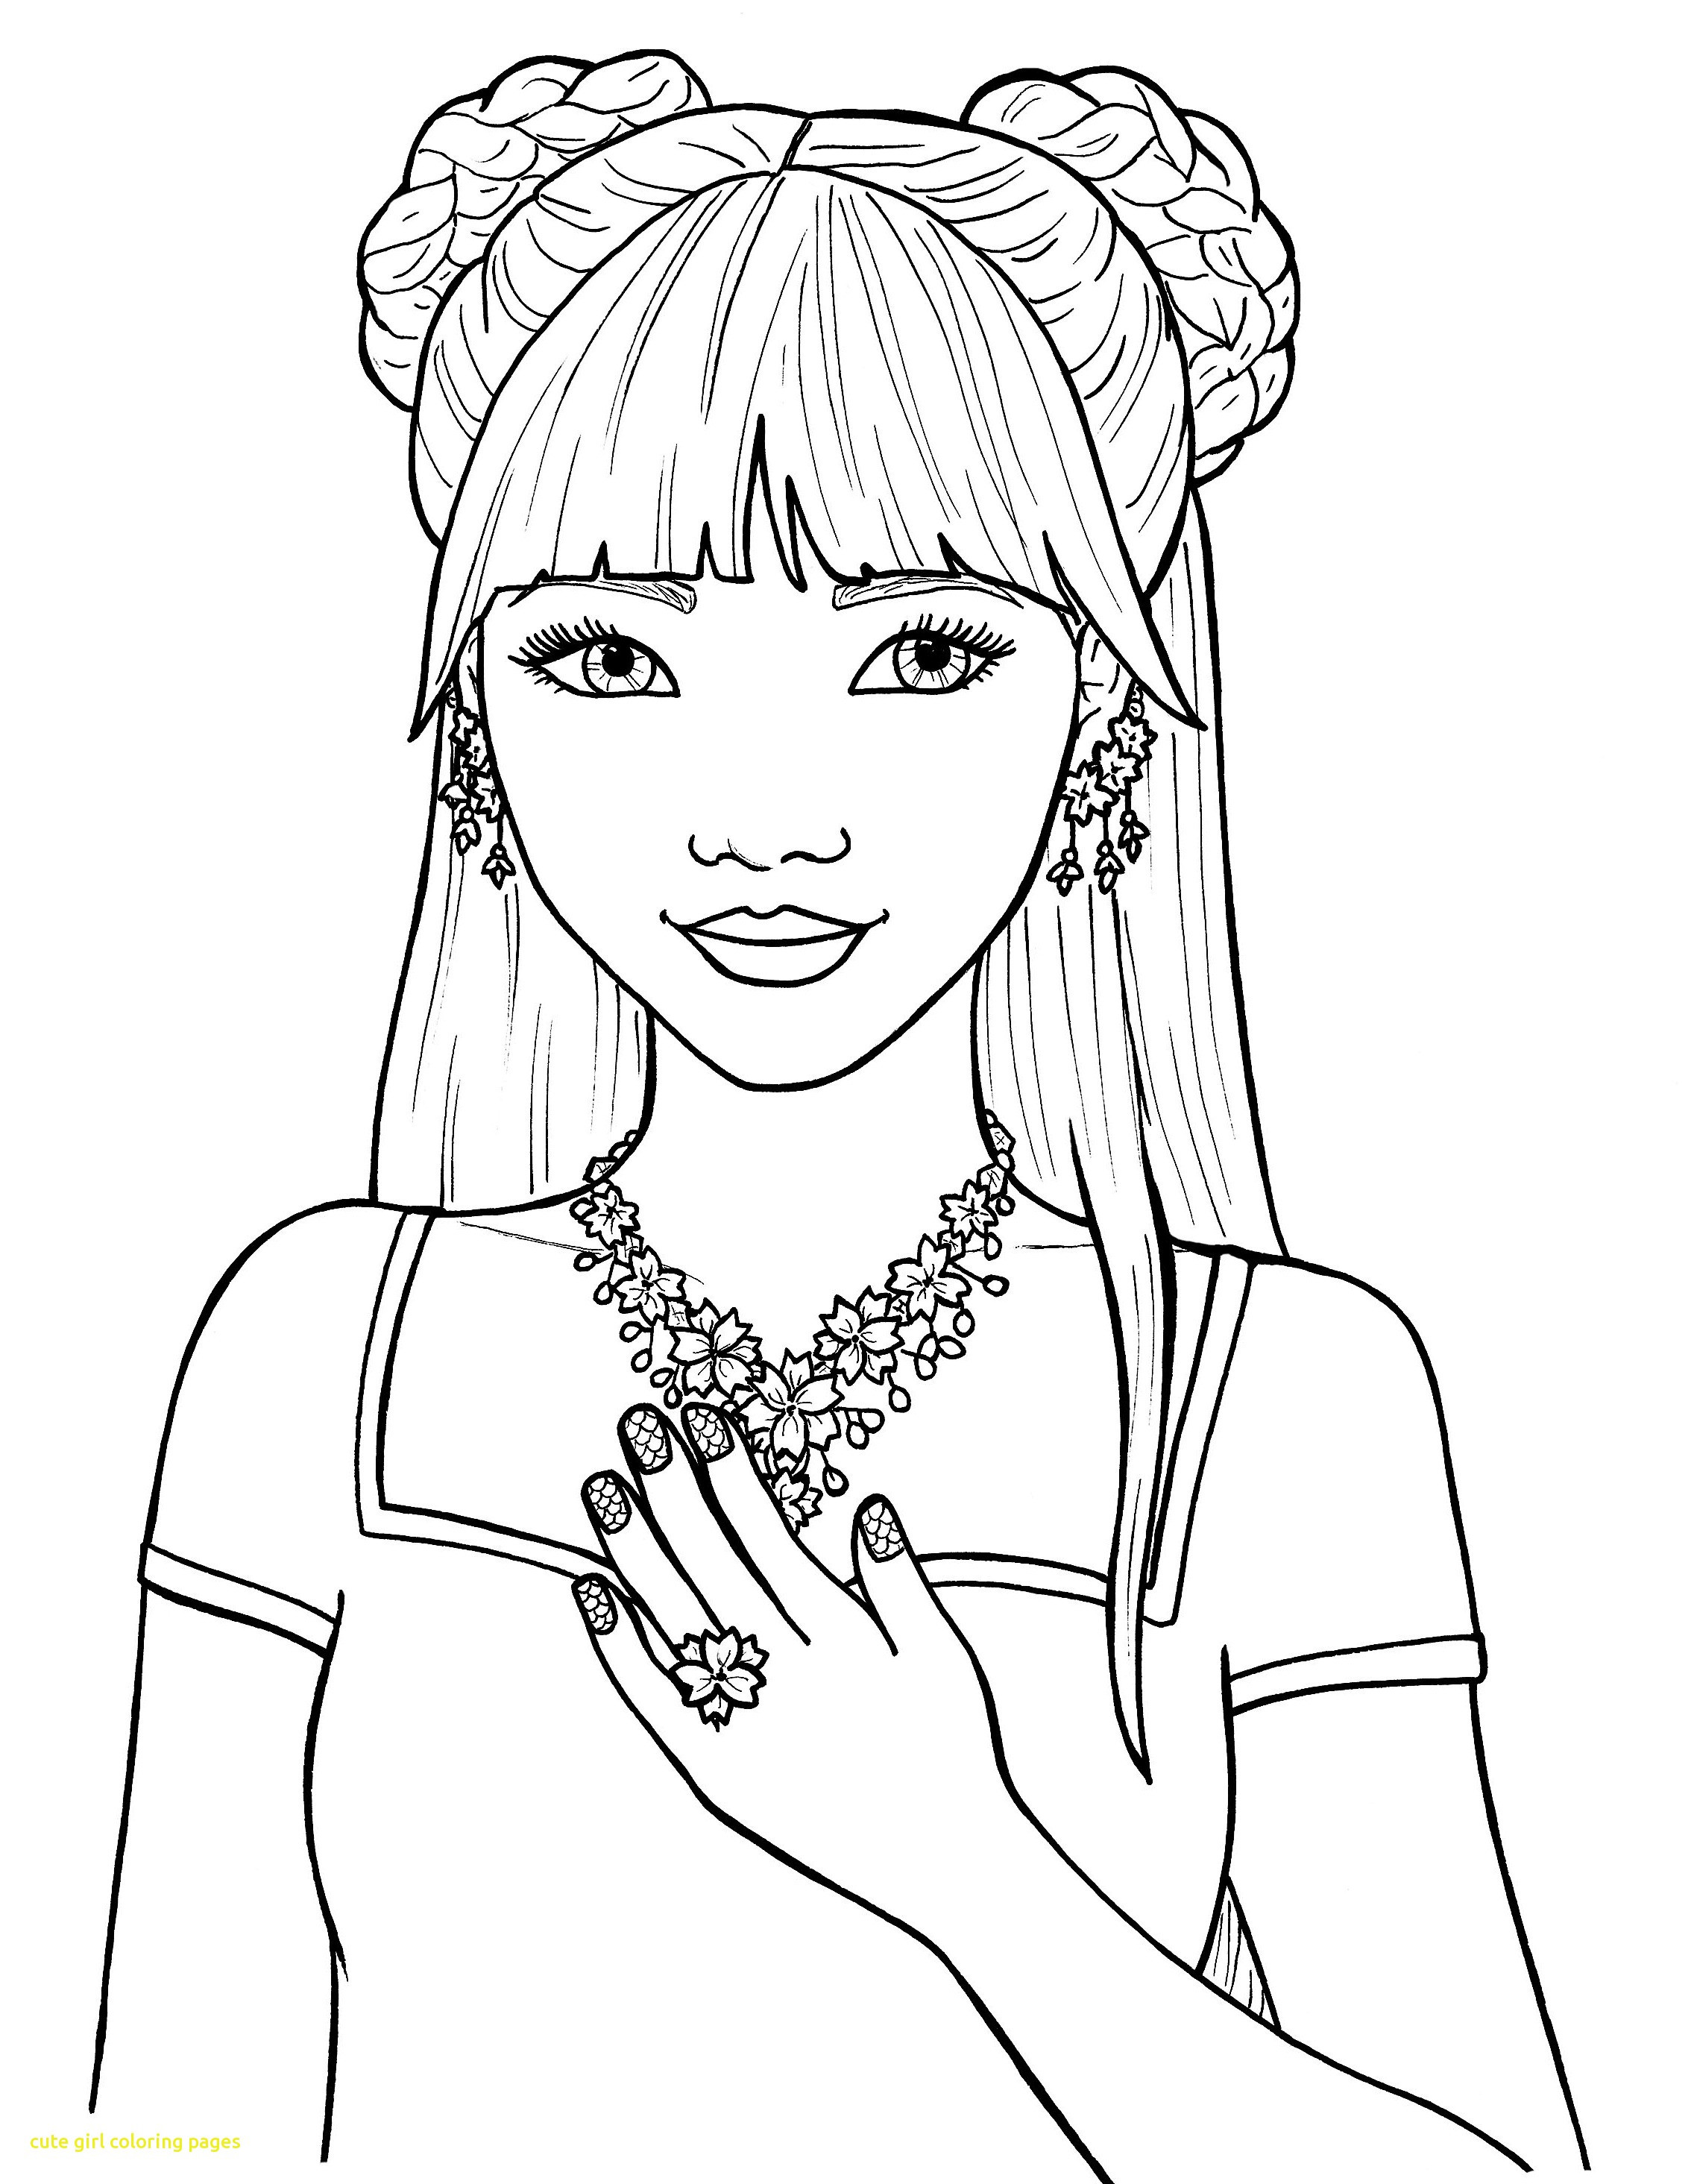 Best ideas about Coloring Sheets For Girls. To Print . Save or Pin Coloring Pages for Girls Best Coloring Pages For Kids Now.